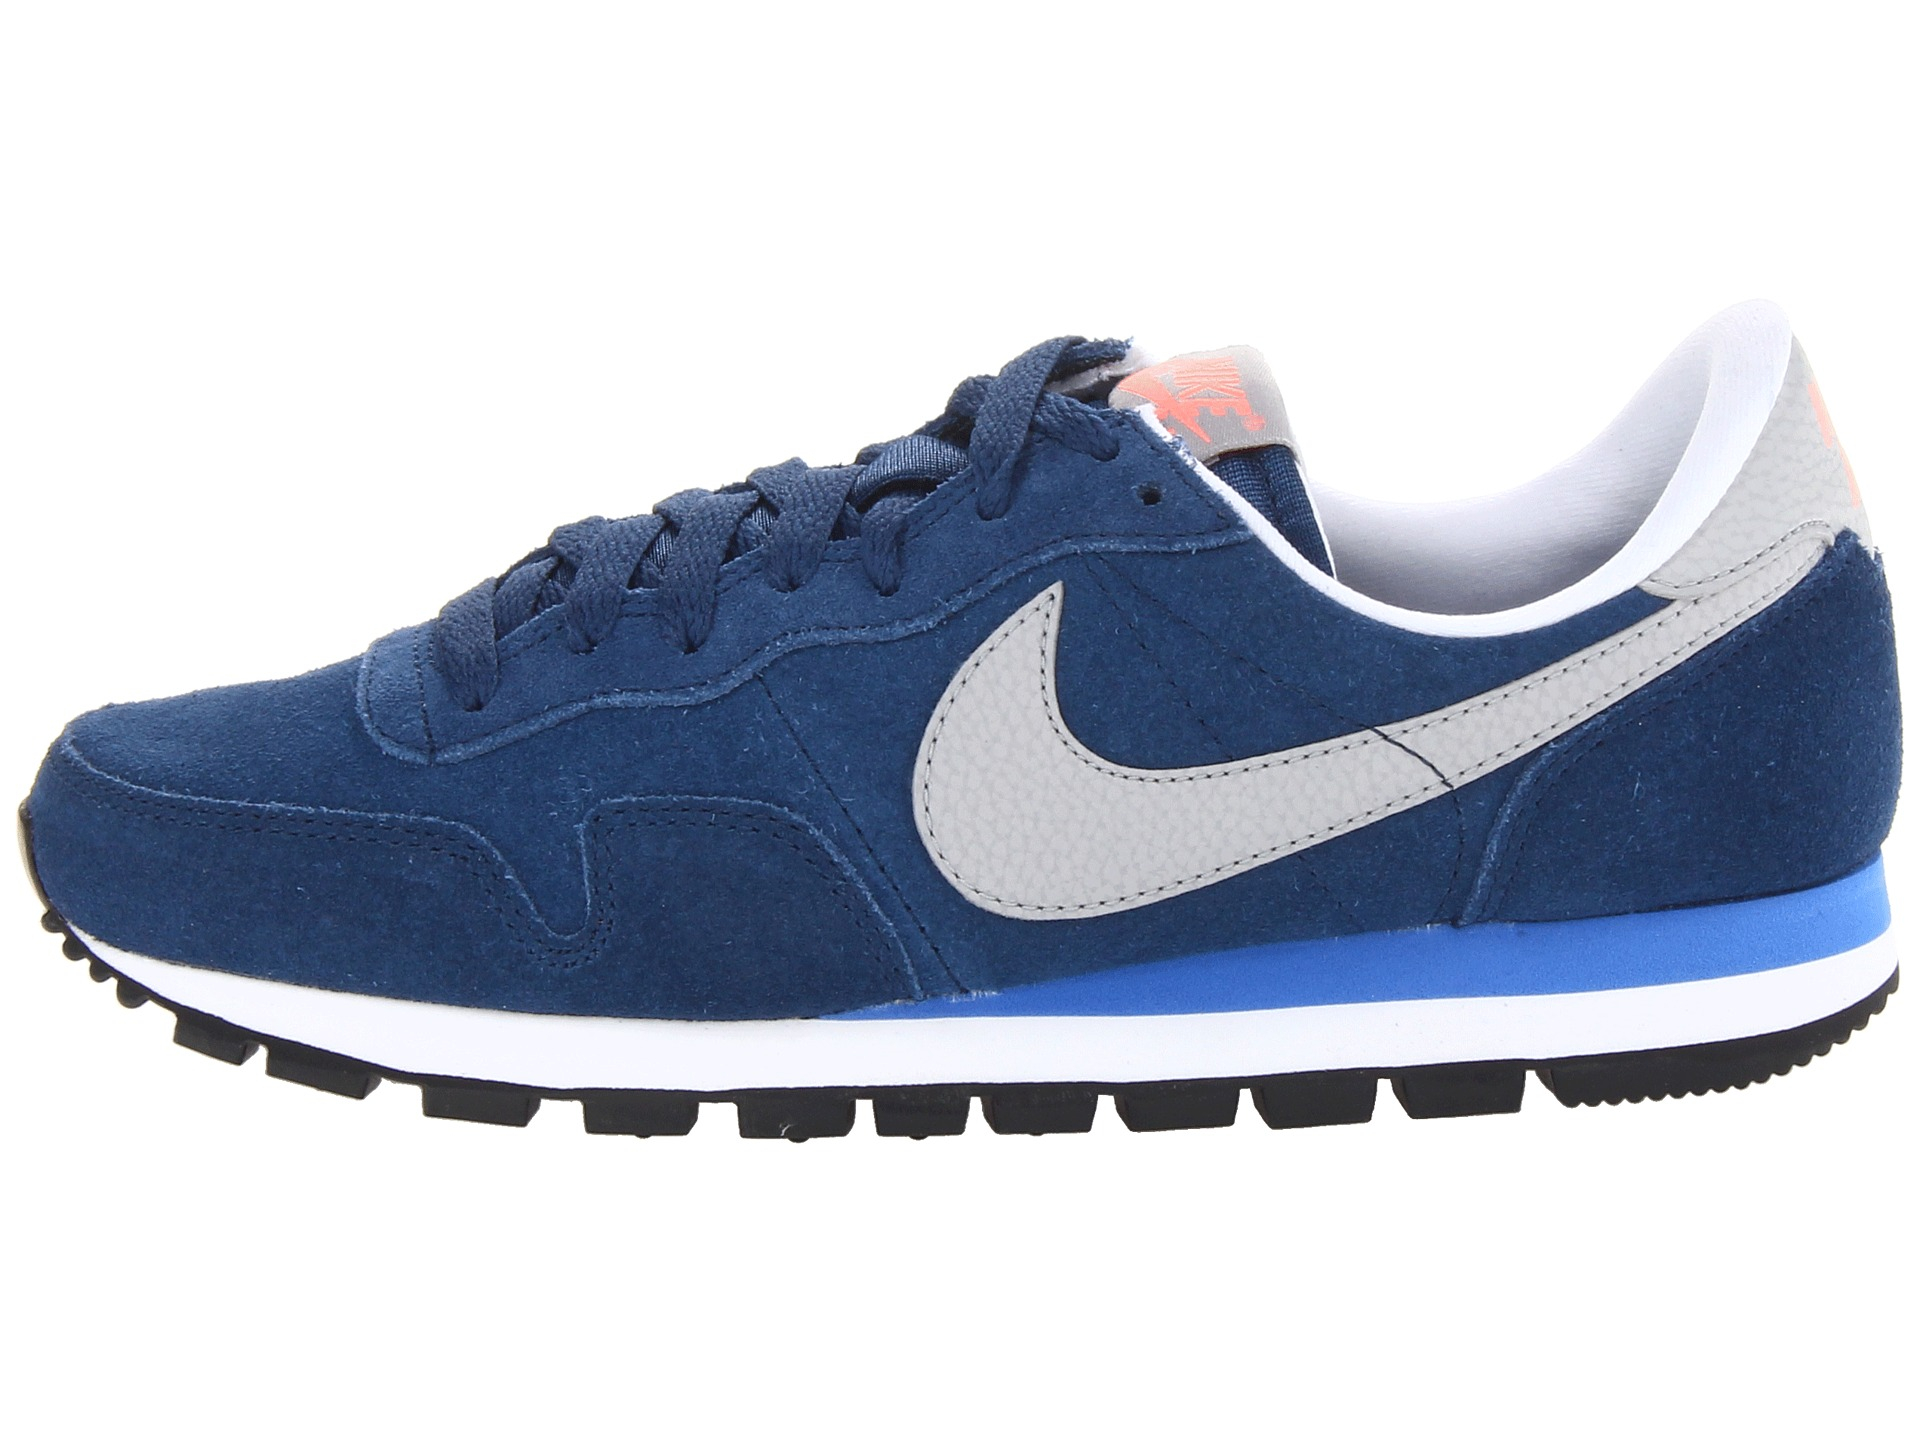 9a9deb9faa900 Lyst - Nike Air Pegasus 83 Leather in Blue for Men